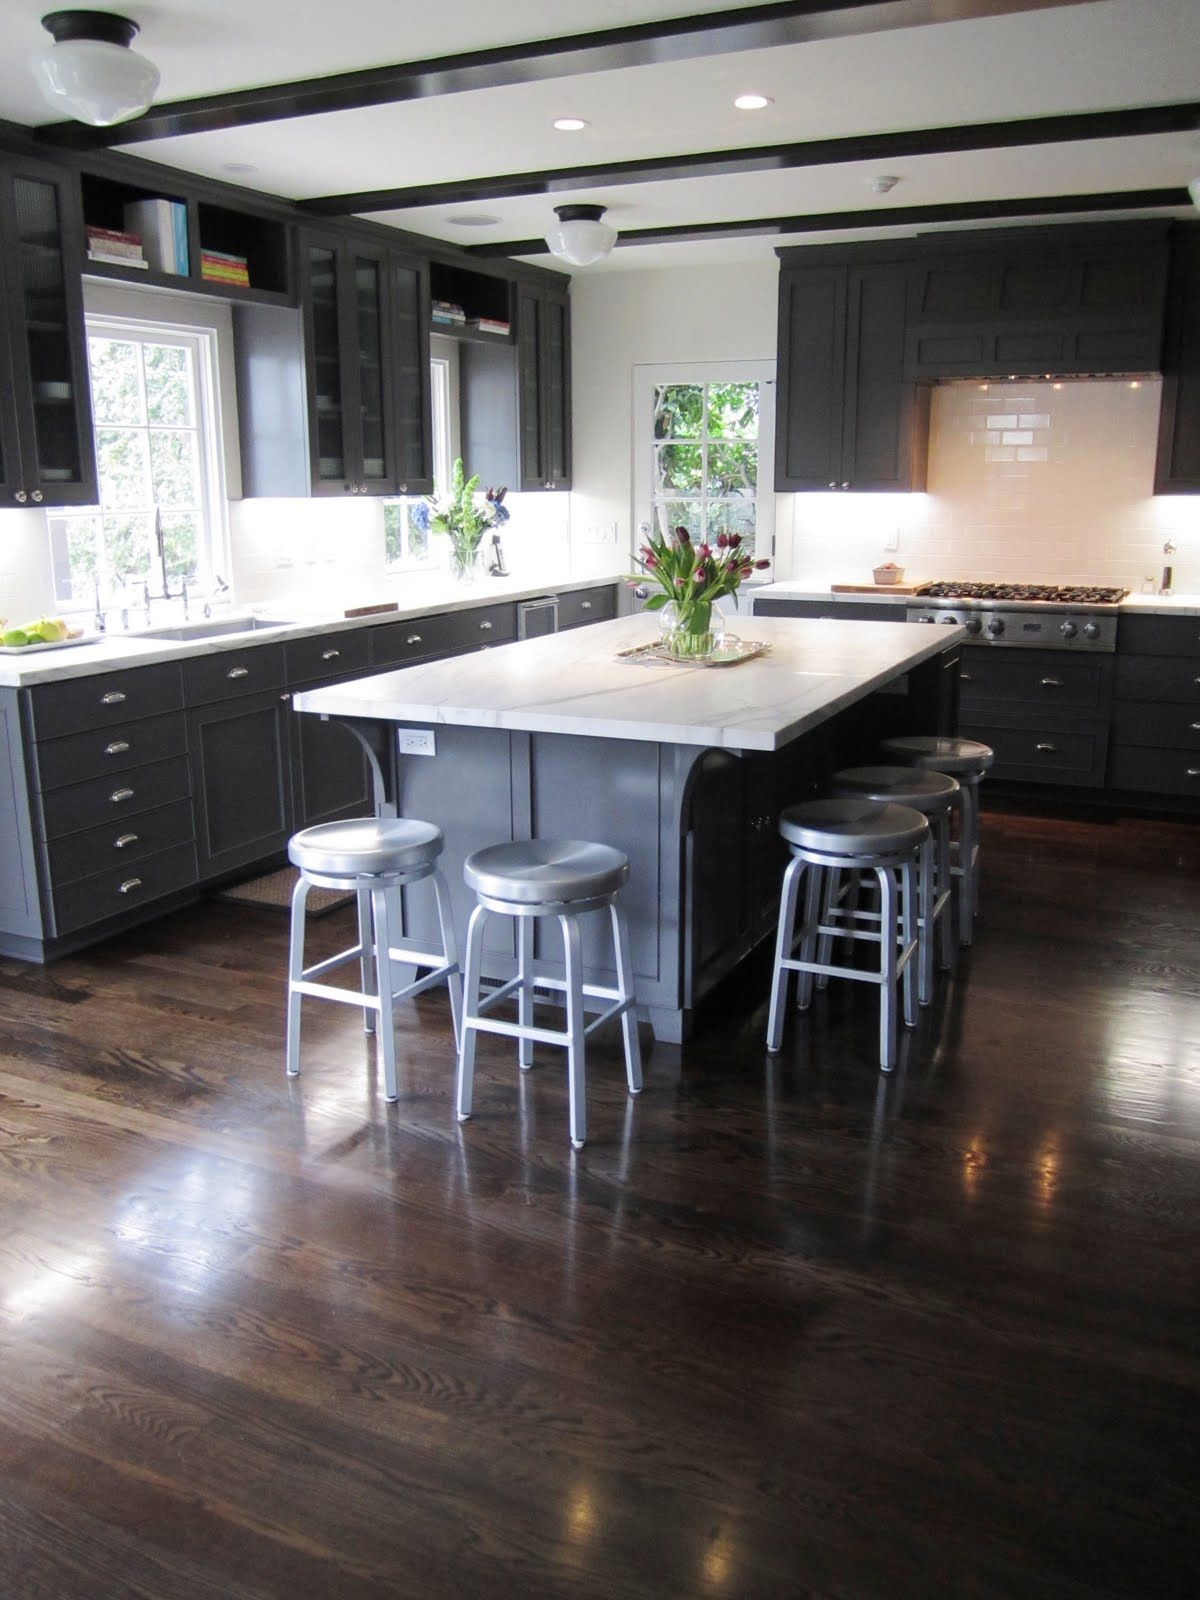 White Kitchens With Dark Wood Floors Thin Celing Beams In Kitchen Cococozy Cococozy Exclusive